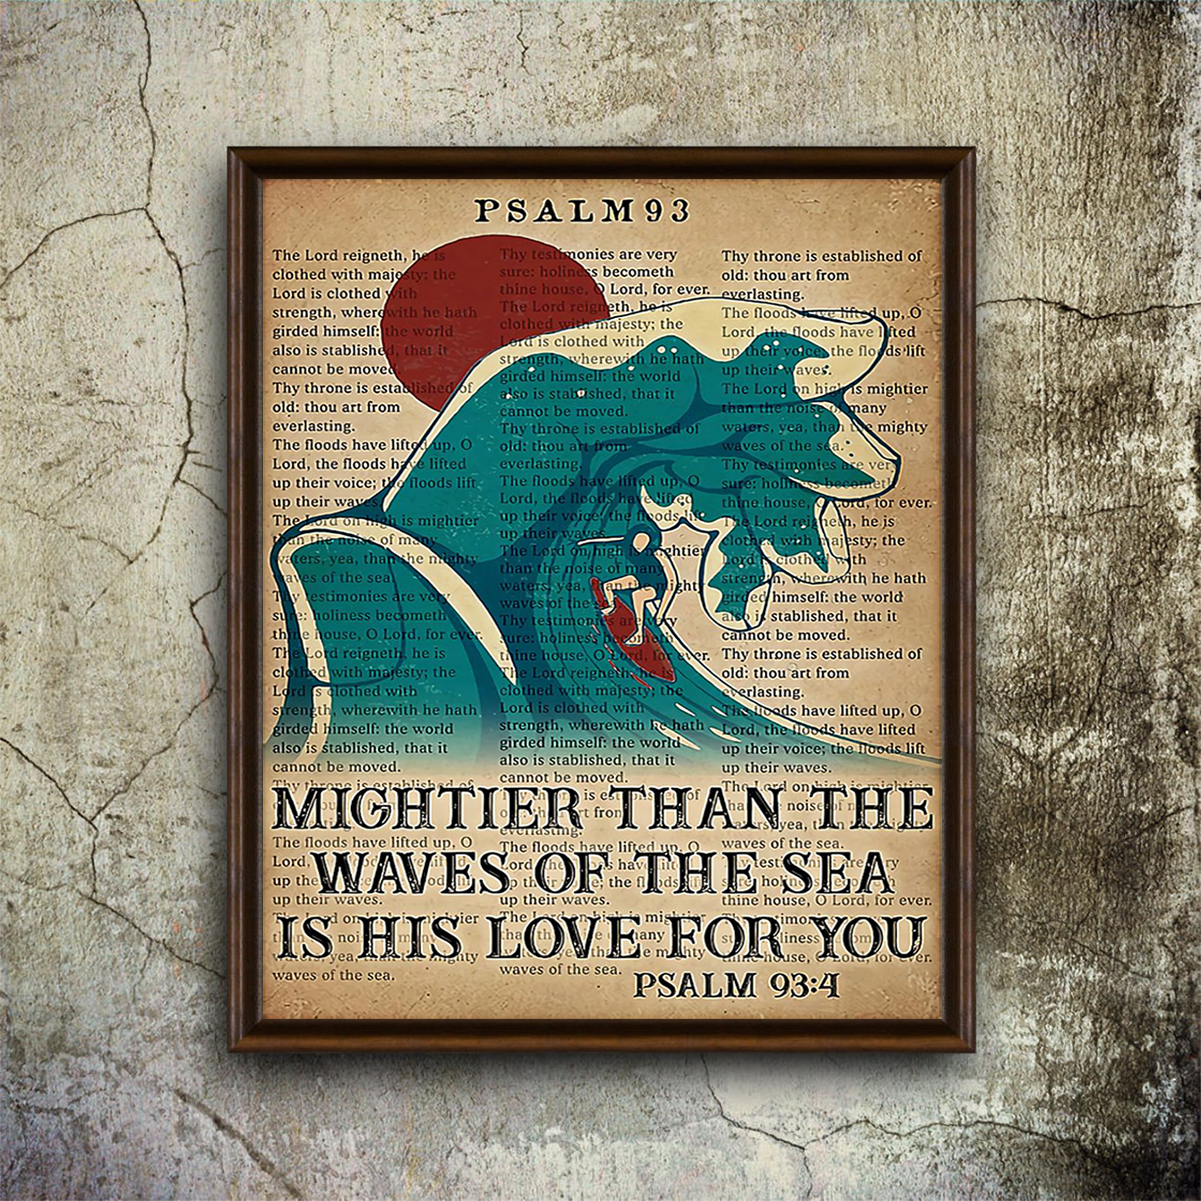 Mightier than the waves of the sea is his love for you poster A1